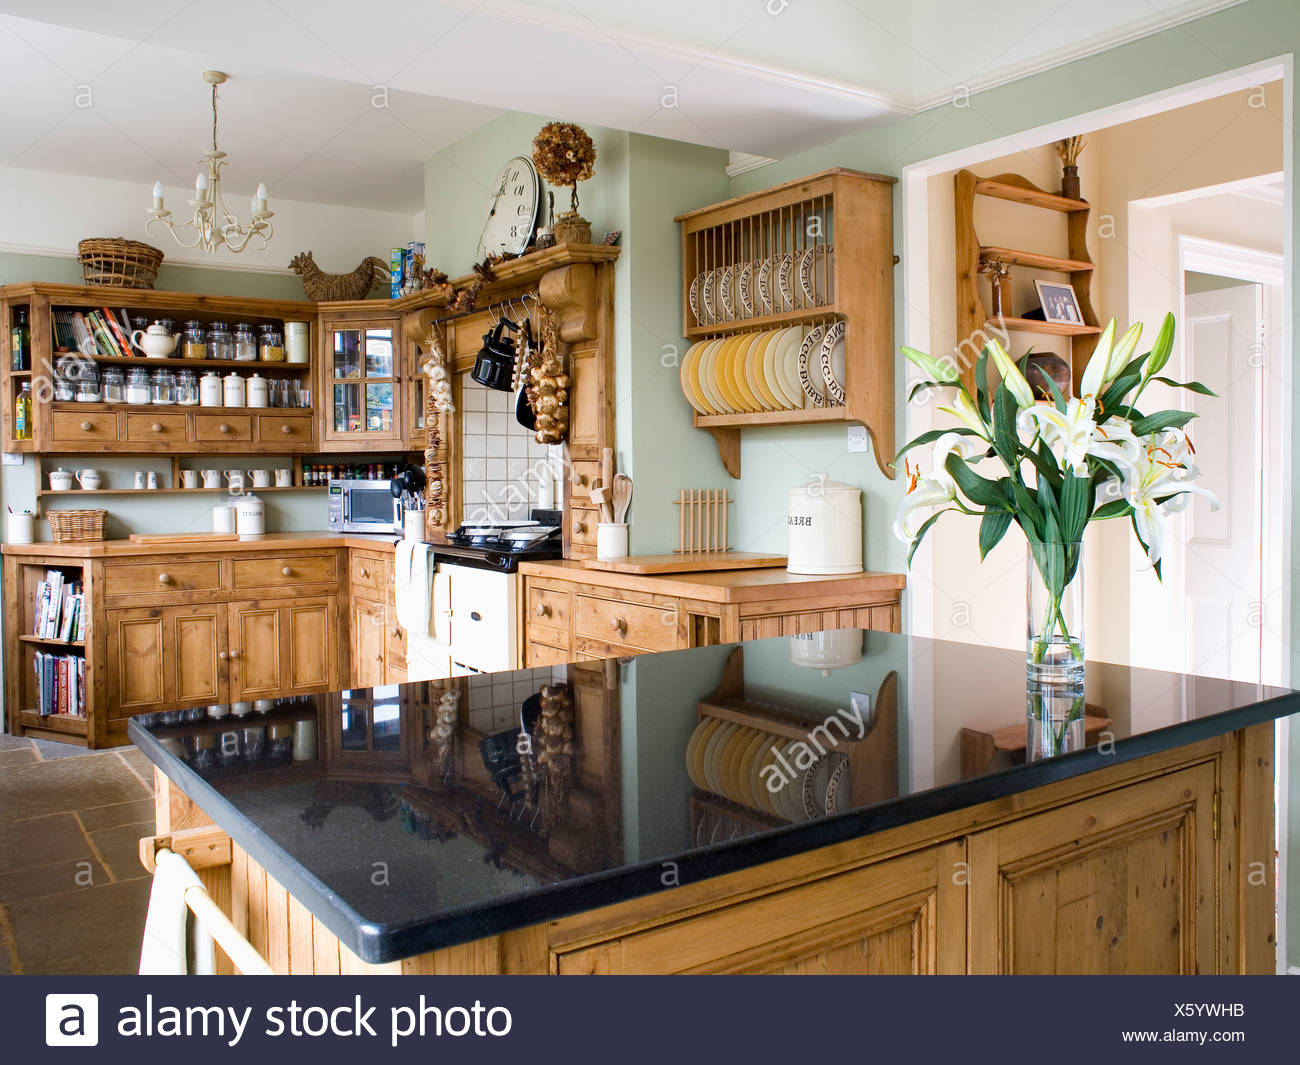 Interiors Fitted Kitchen Pine Imágenes De Stock & Interiors Fitted ...